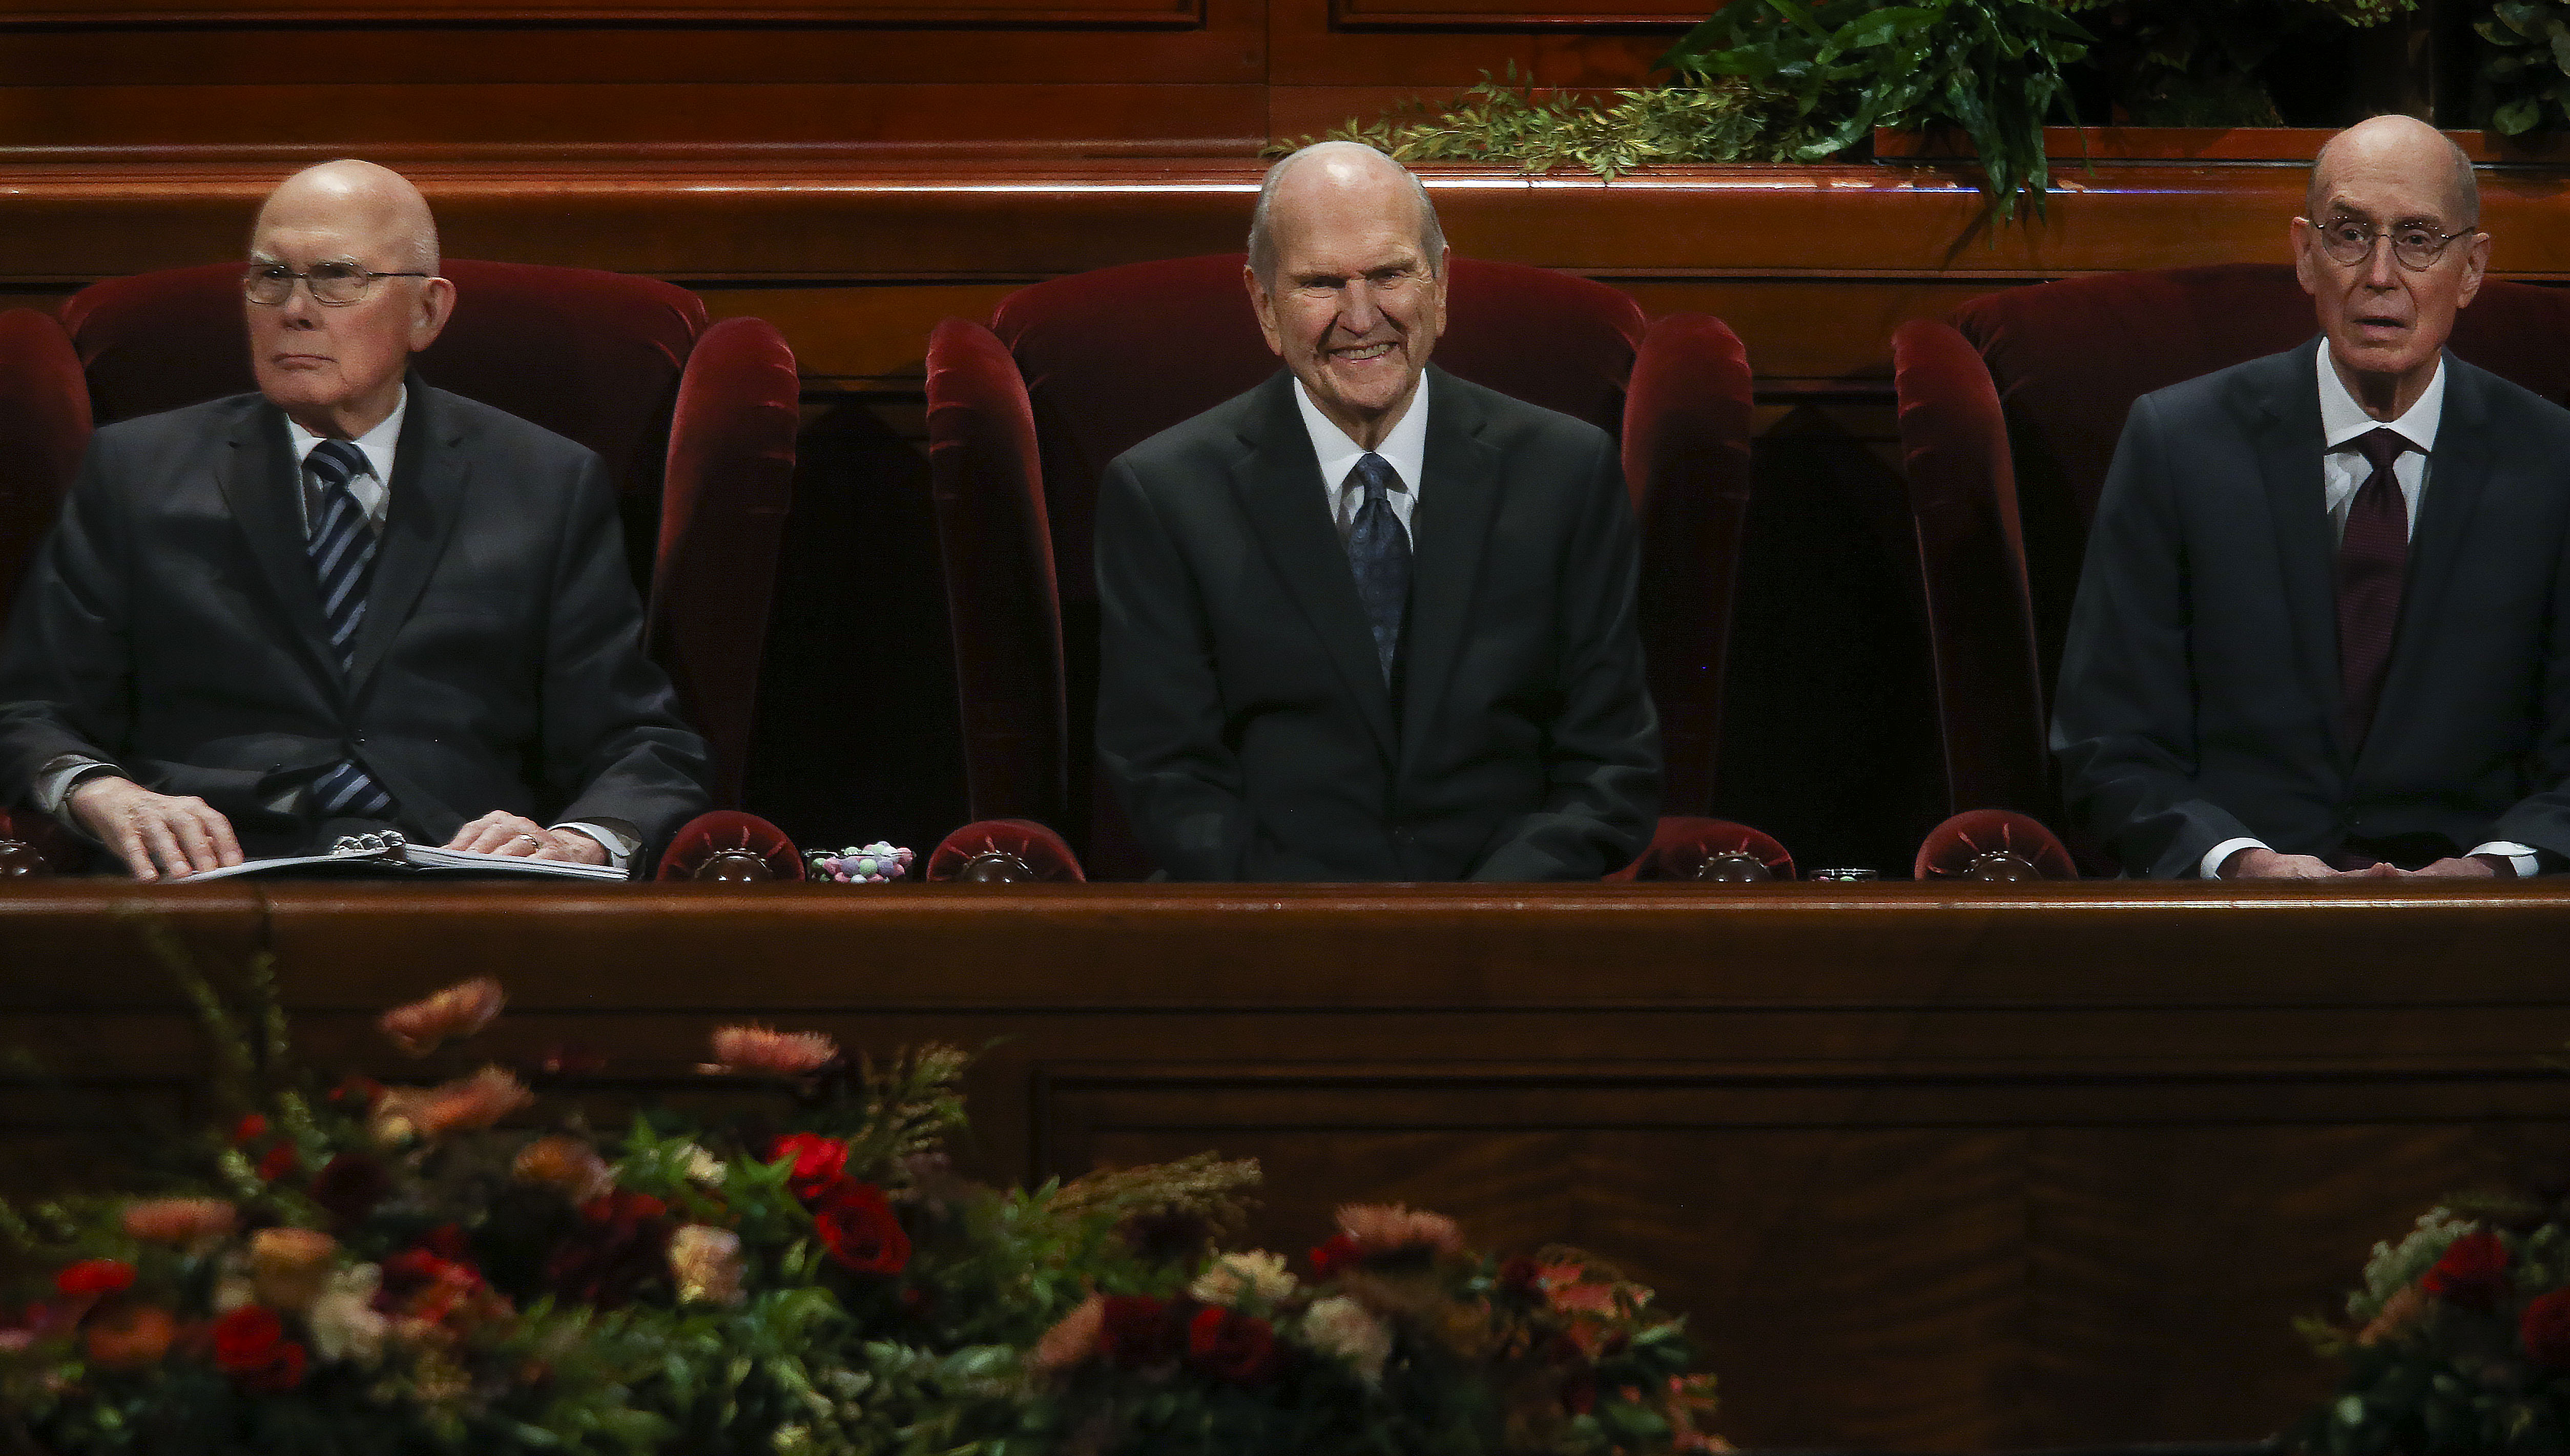 President Russell M. Nelson, of The Church of Jesus Christ of Latter-day Saints, center, and his counselors, President Dallin H. Oaks, first counselor in the First Presidency, left, and President Henry B. Eyring, second counselor in the First Presidency, right, wait for the start of the Sunday afternoon session of general conference in the Conference Center in Salt Lake City on Sunday, Oct. 6, 2019.